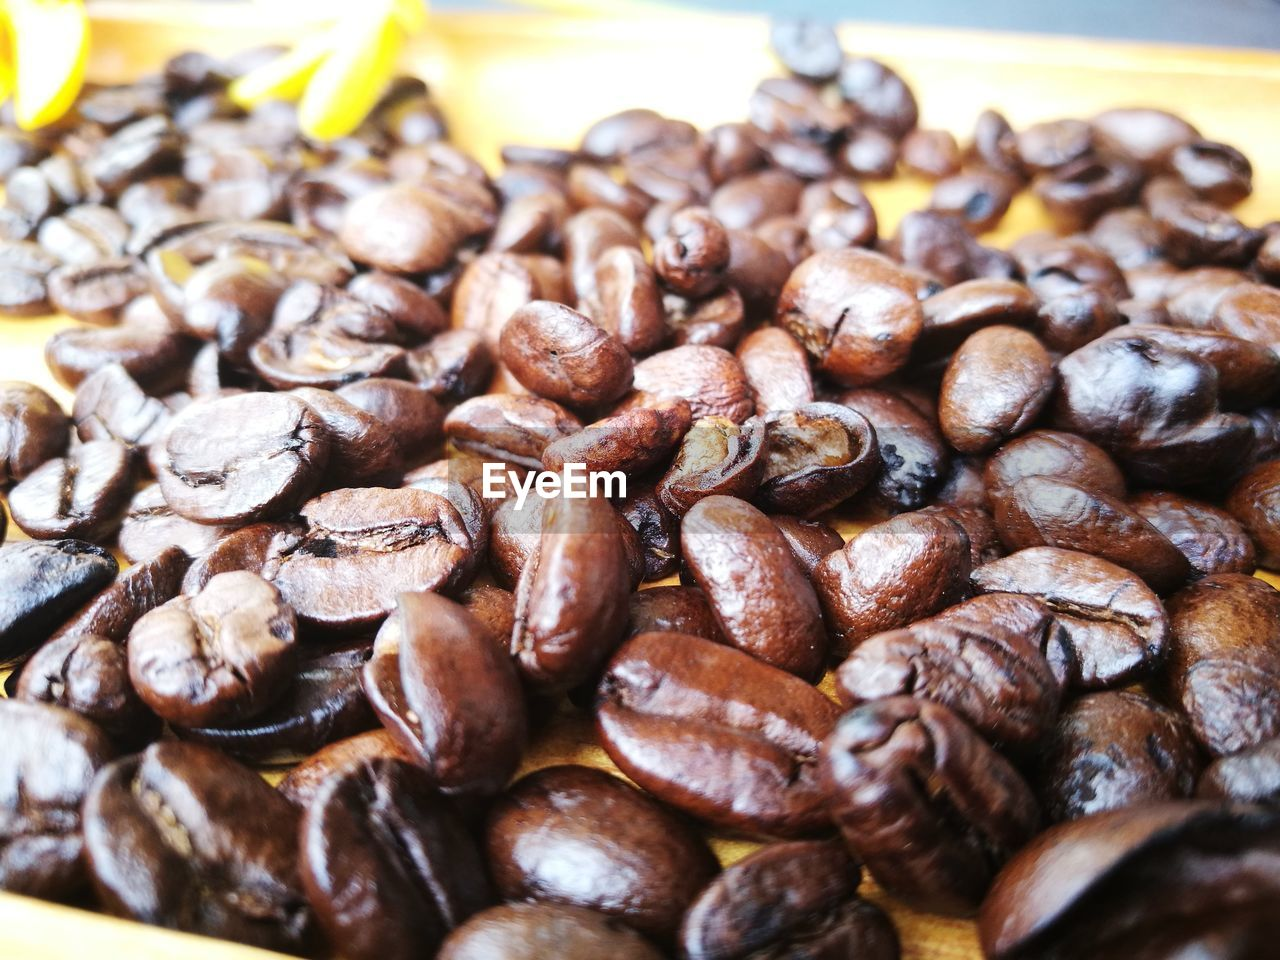 CLOSE-UP OF ROASTED COFFEE